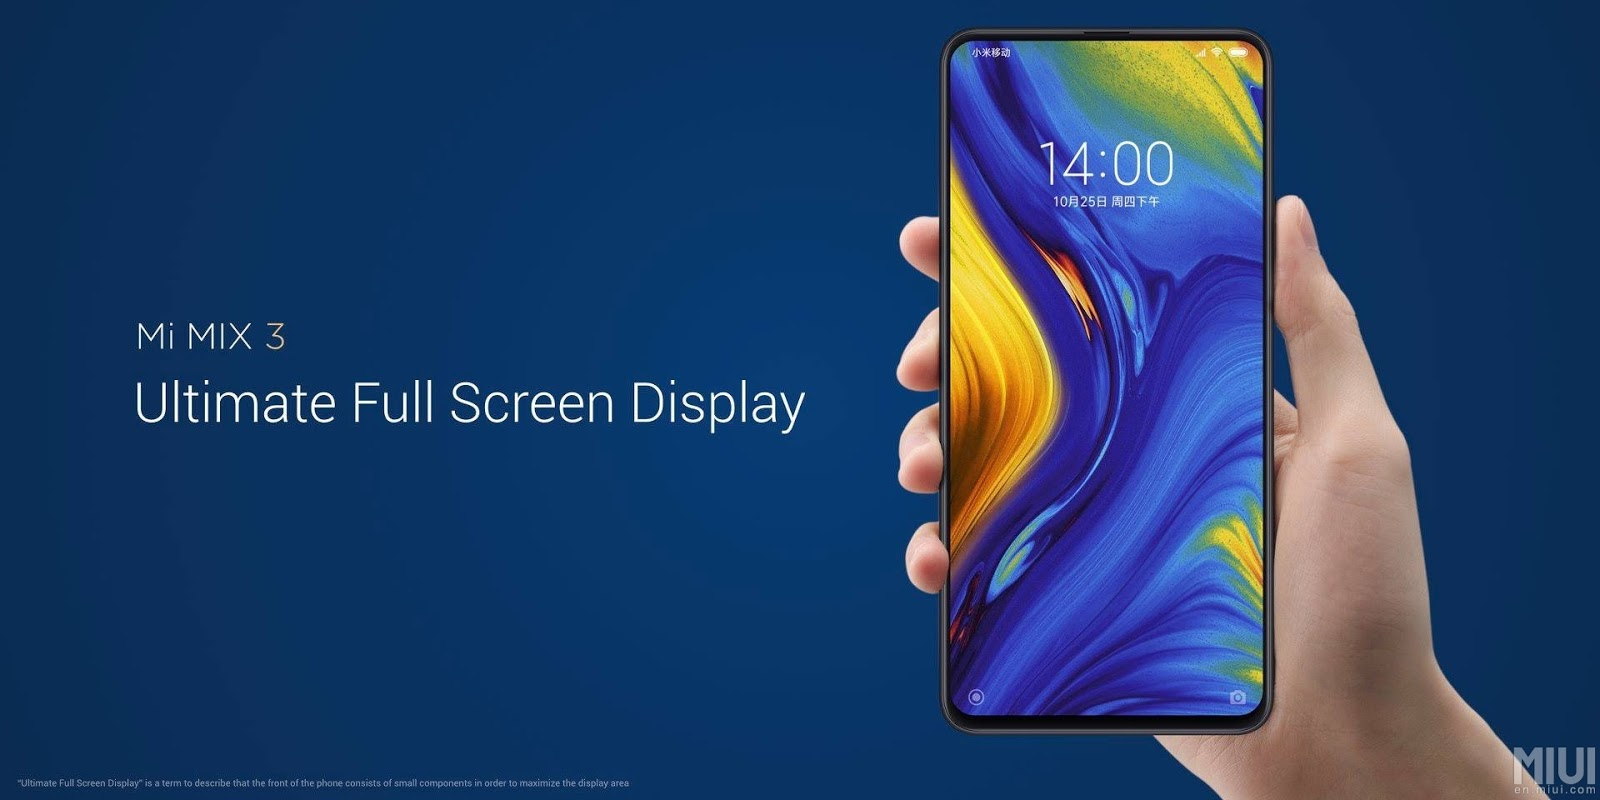 The Xiaomi Mi Mix 3 is officially announced with four cameras and a 6.4-inch screen